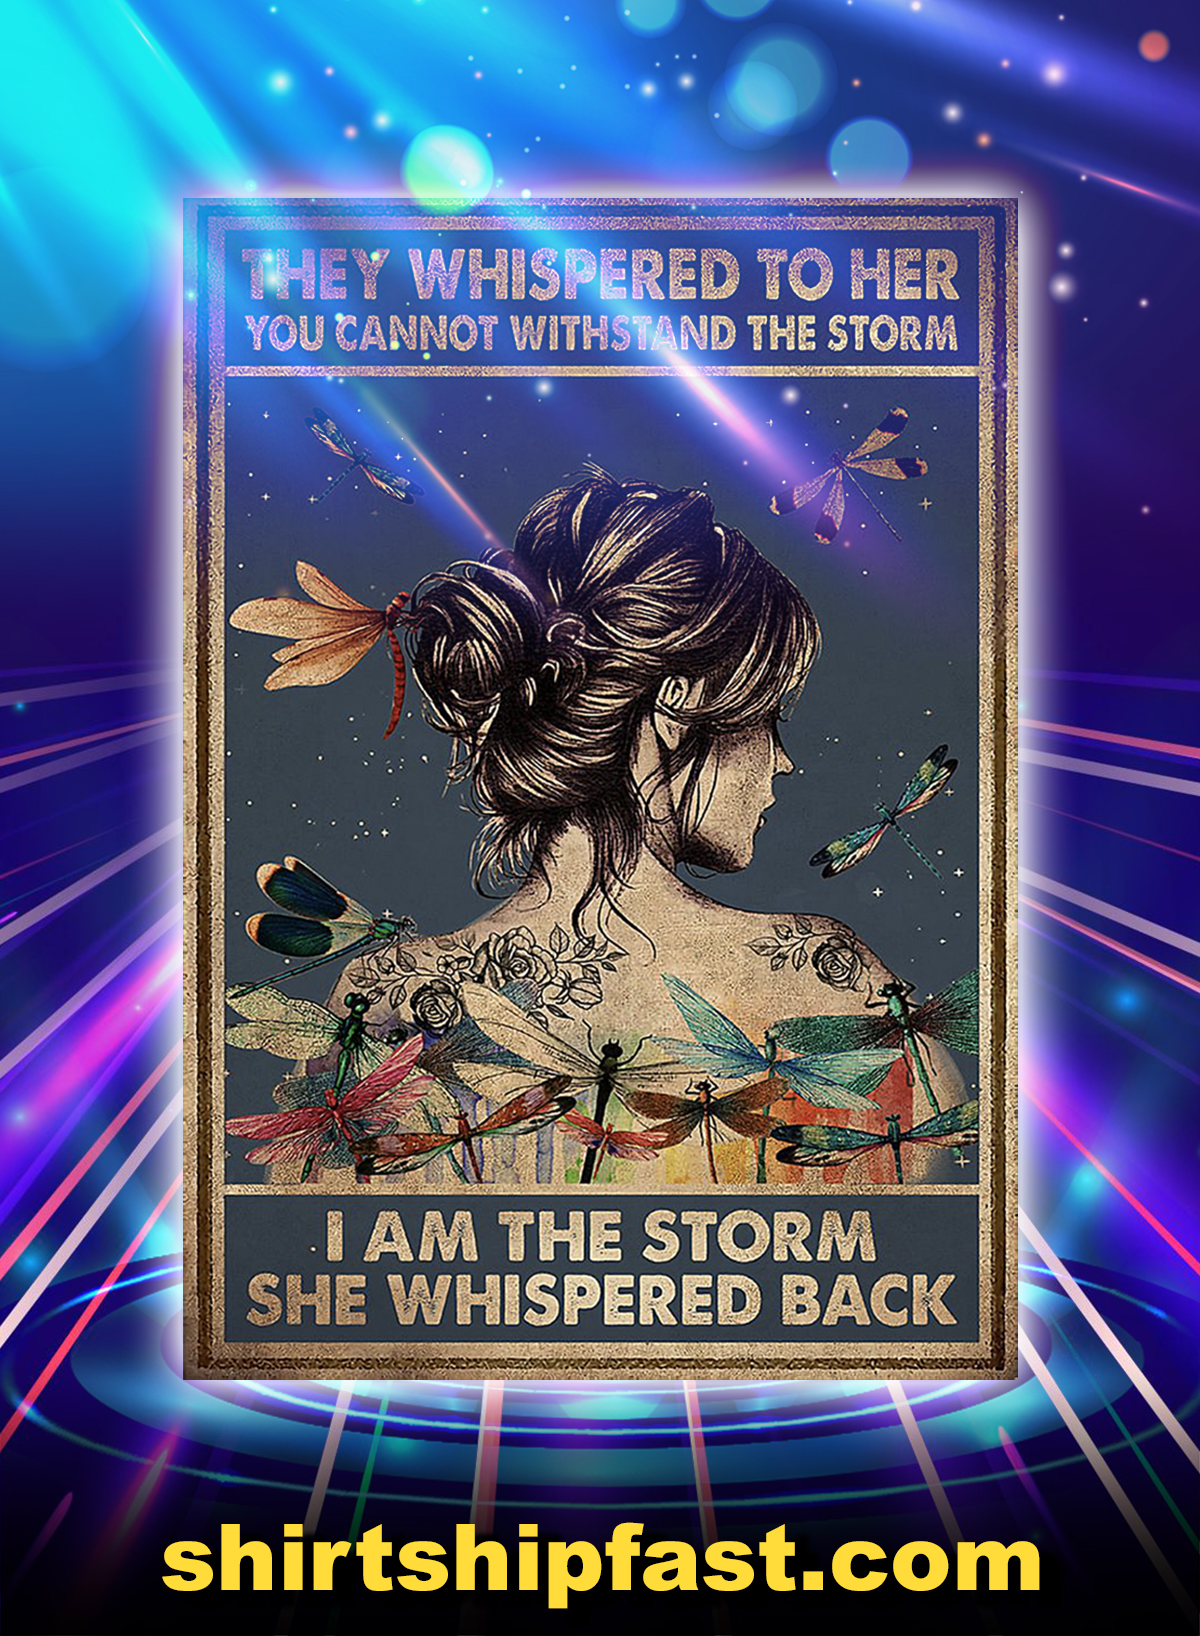 Poster hippie dragonfly they whispered to her you cannot withstand the storm - A1